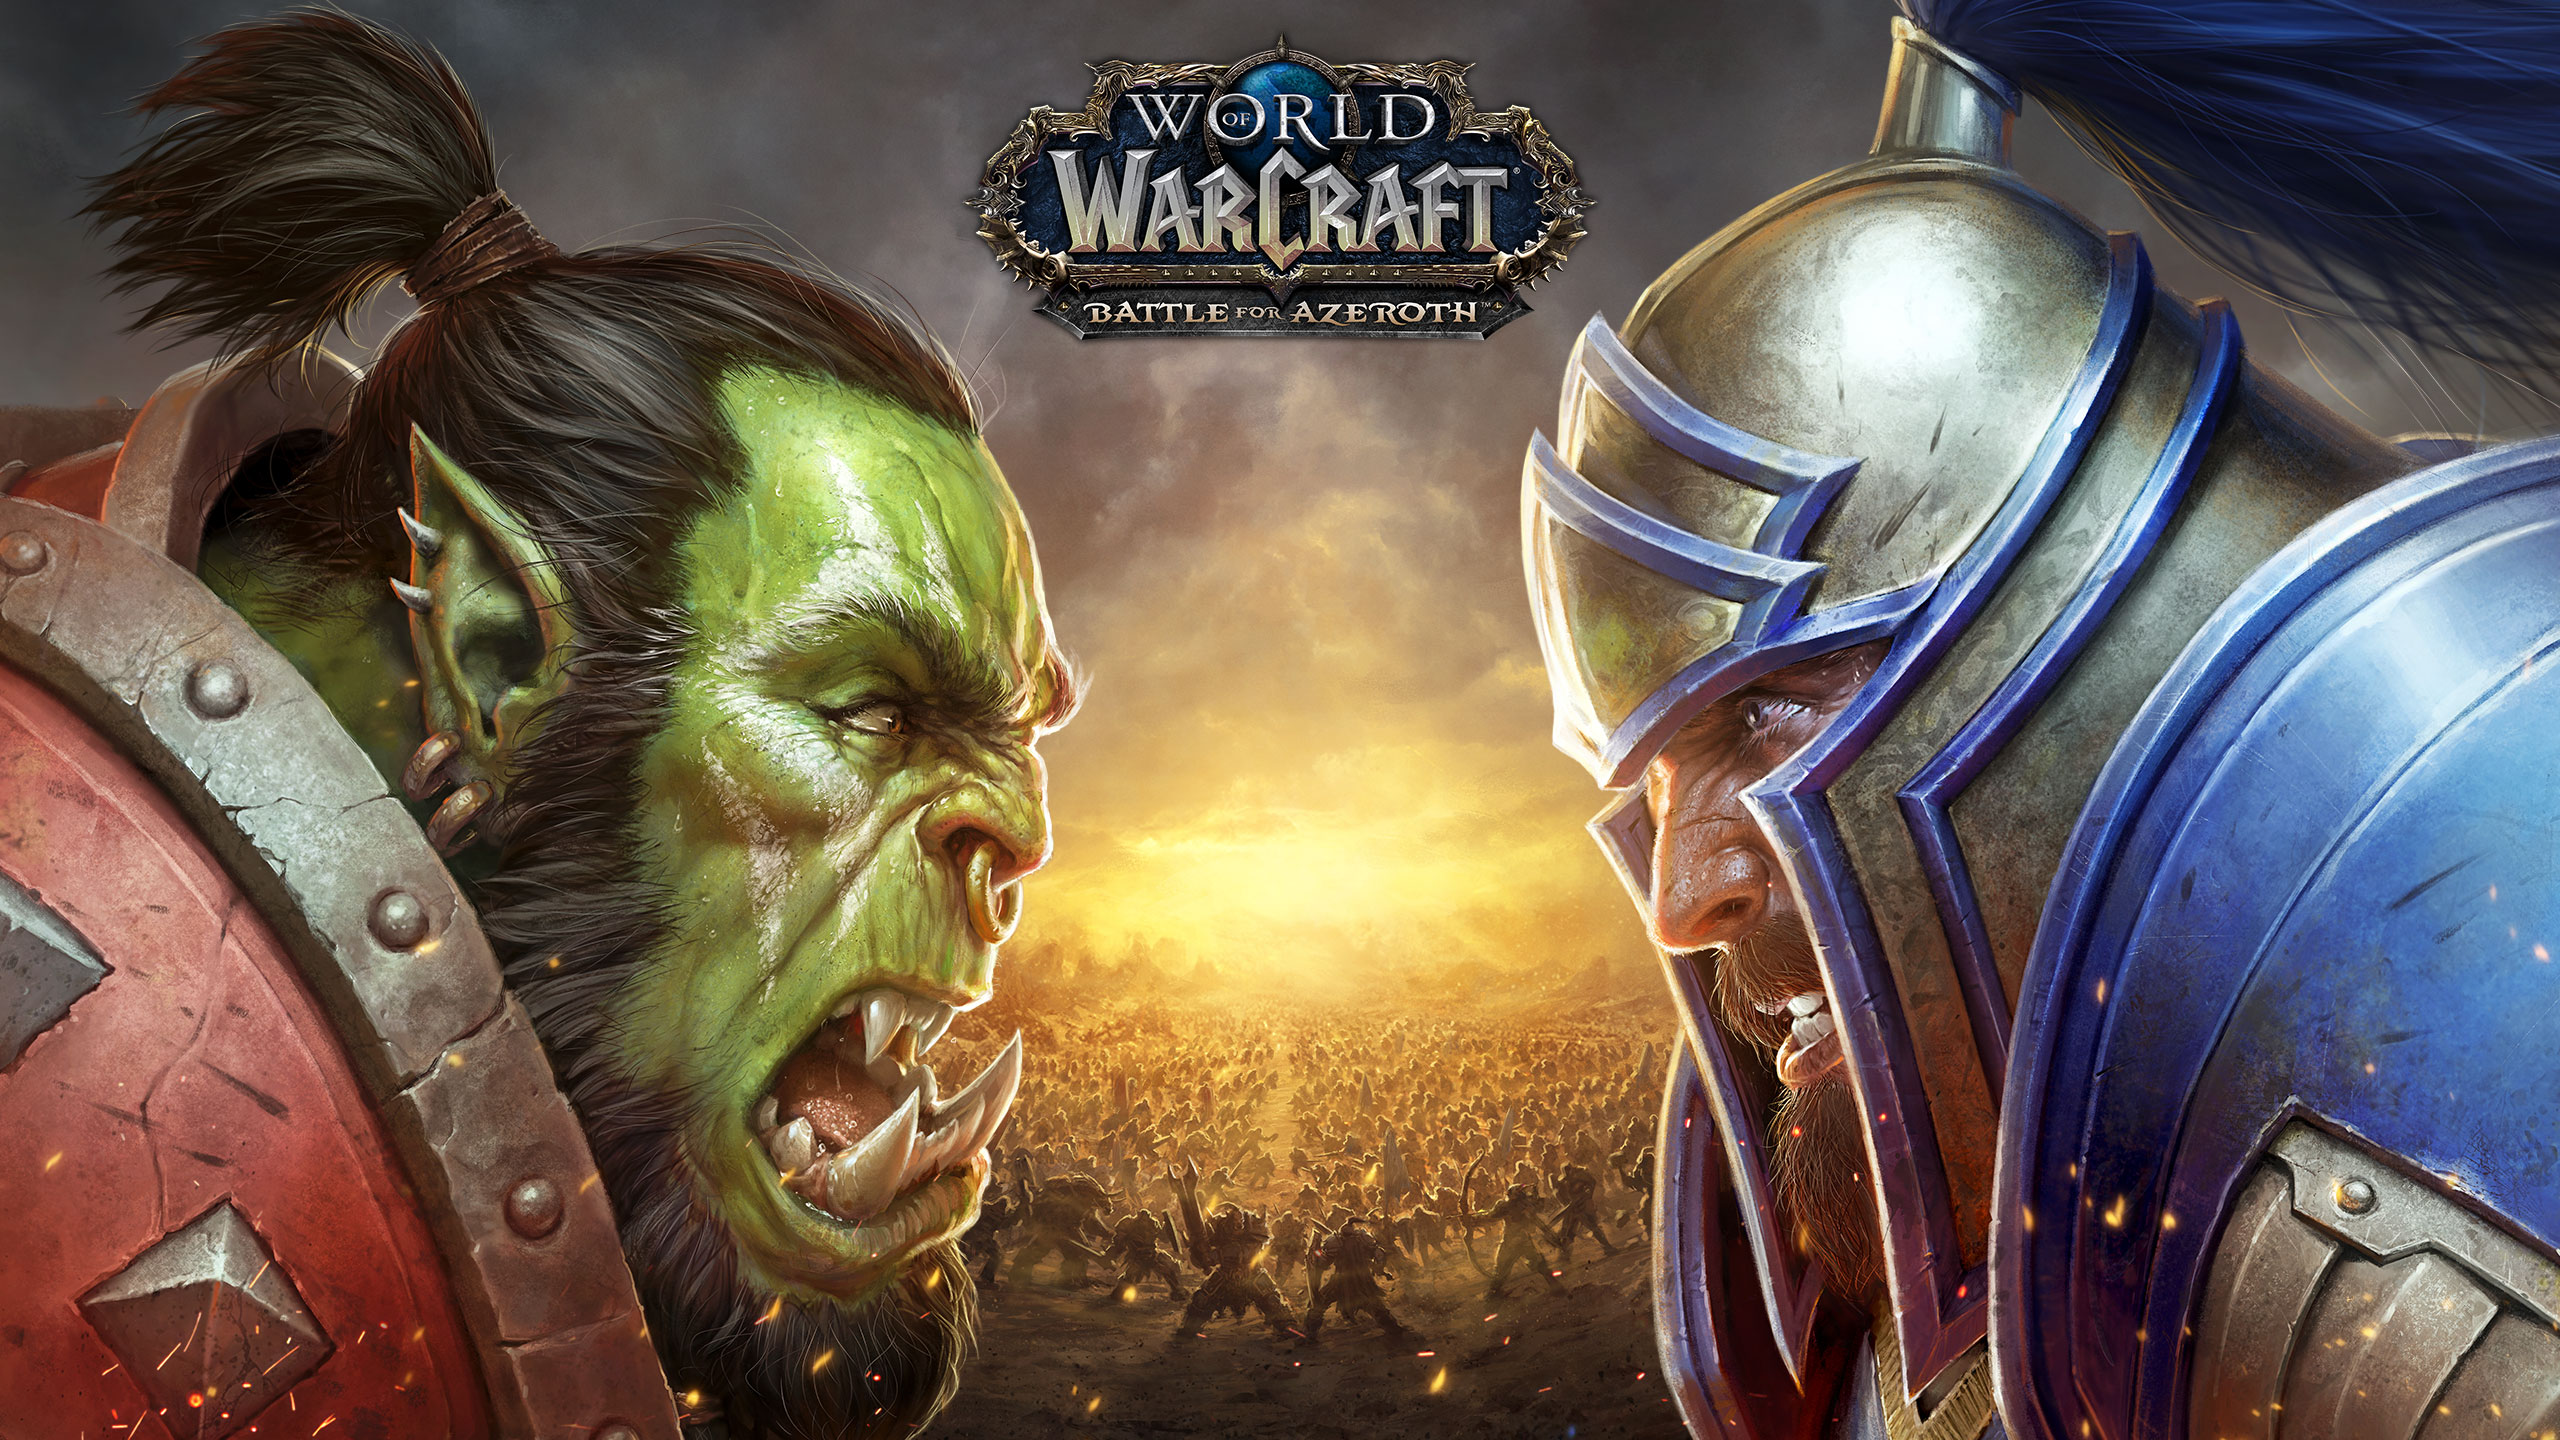 Download World of Warcraft: Battle for Azeroth for PC Free [Deluxe Edition]